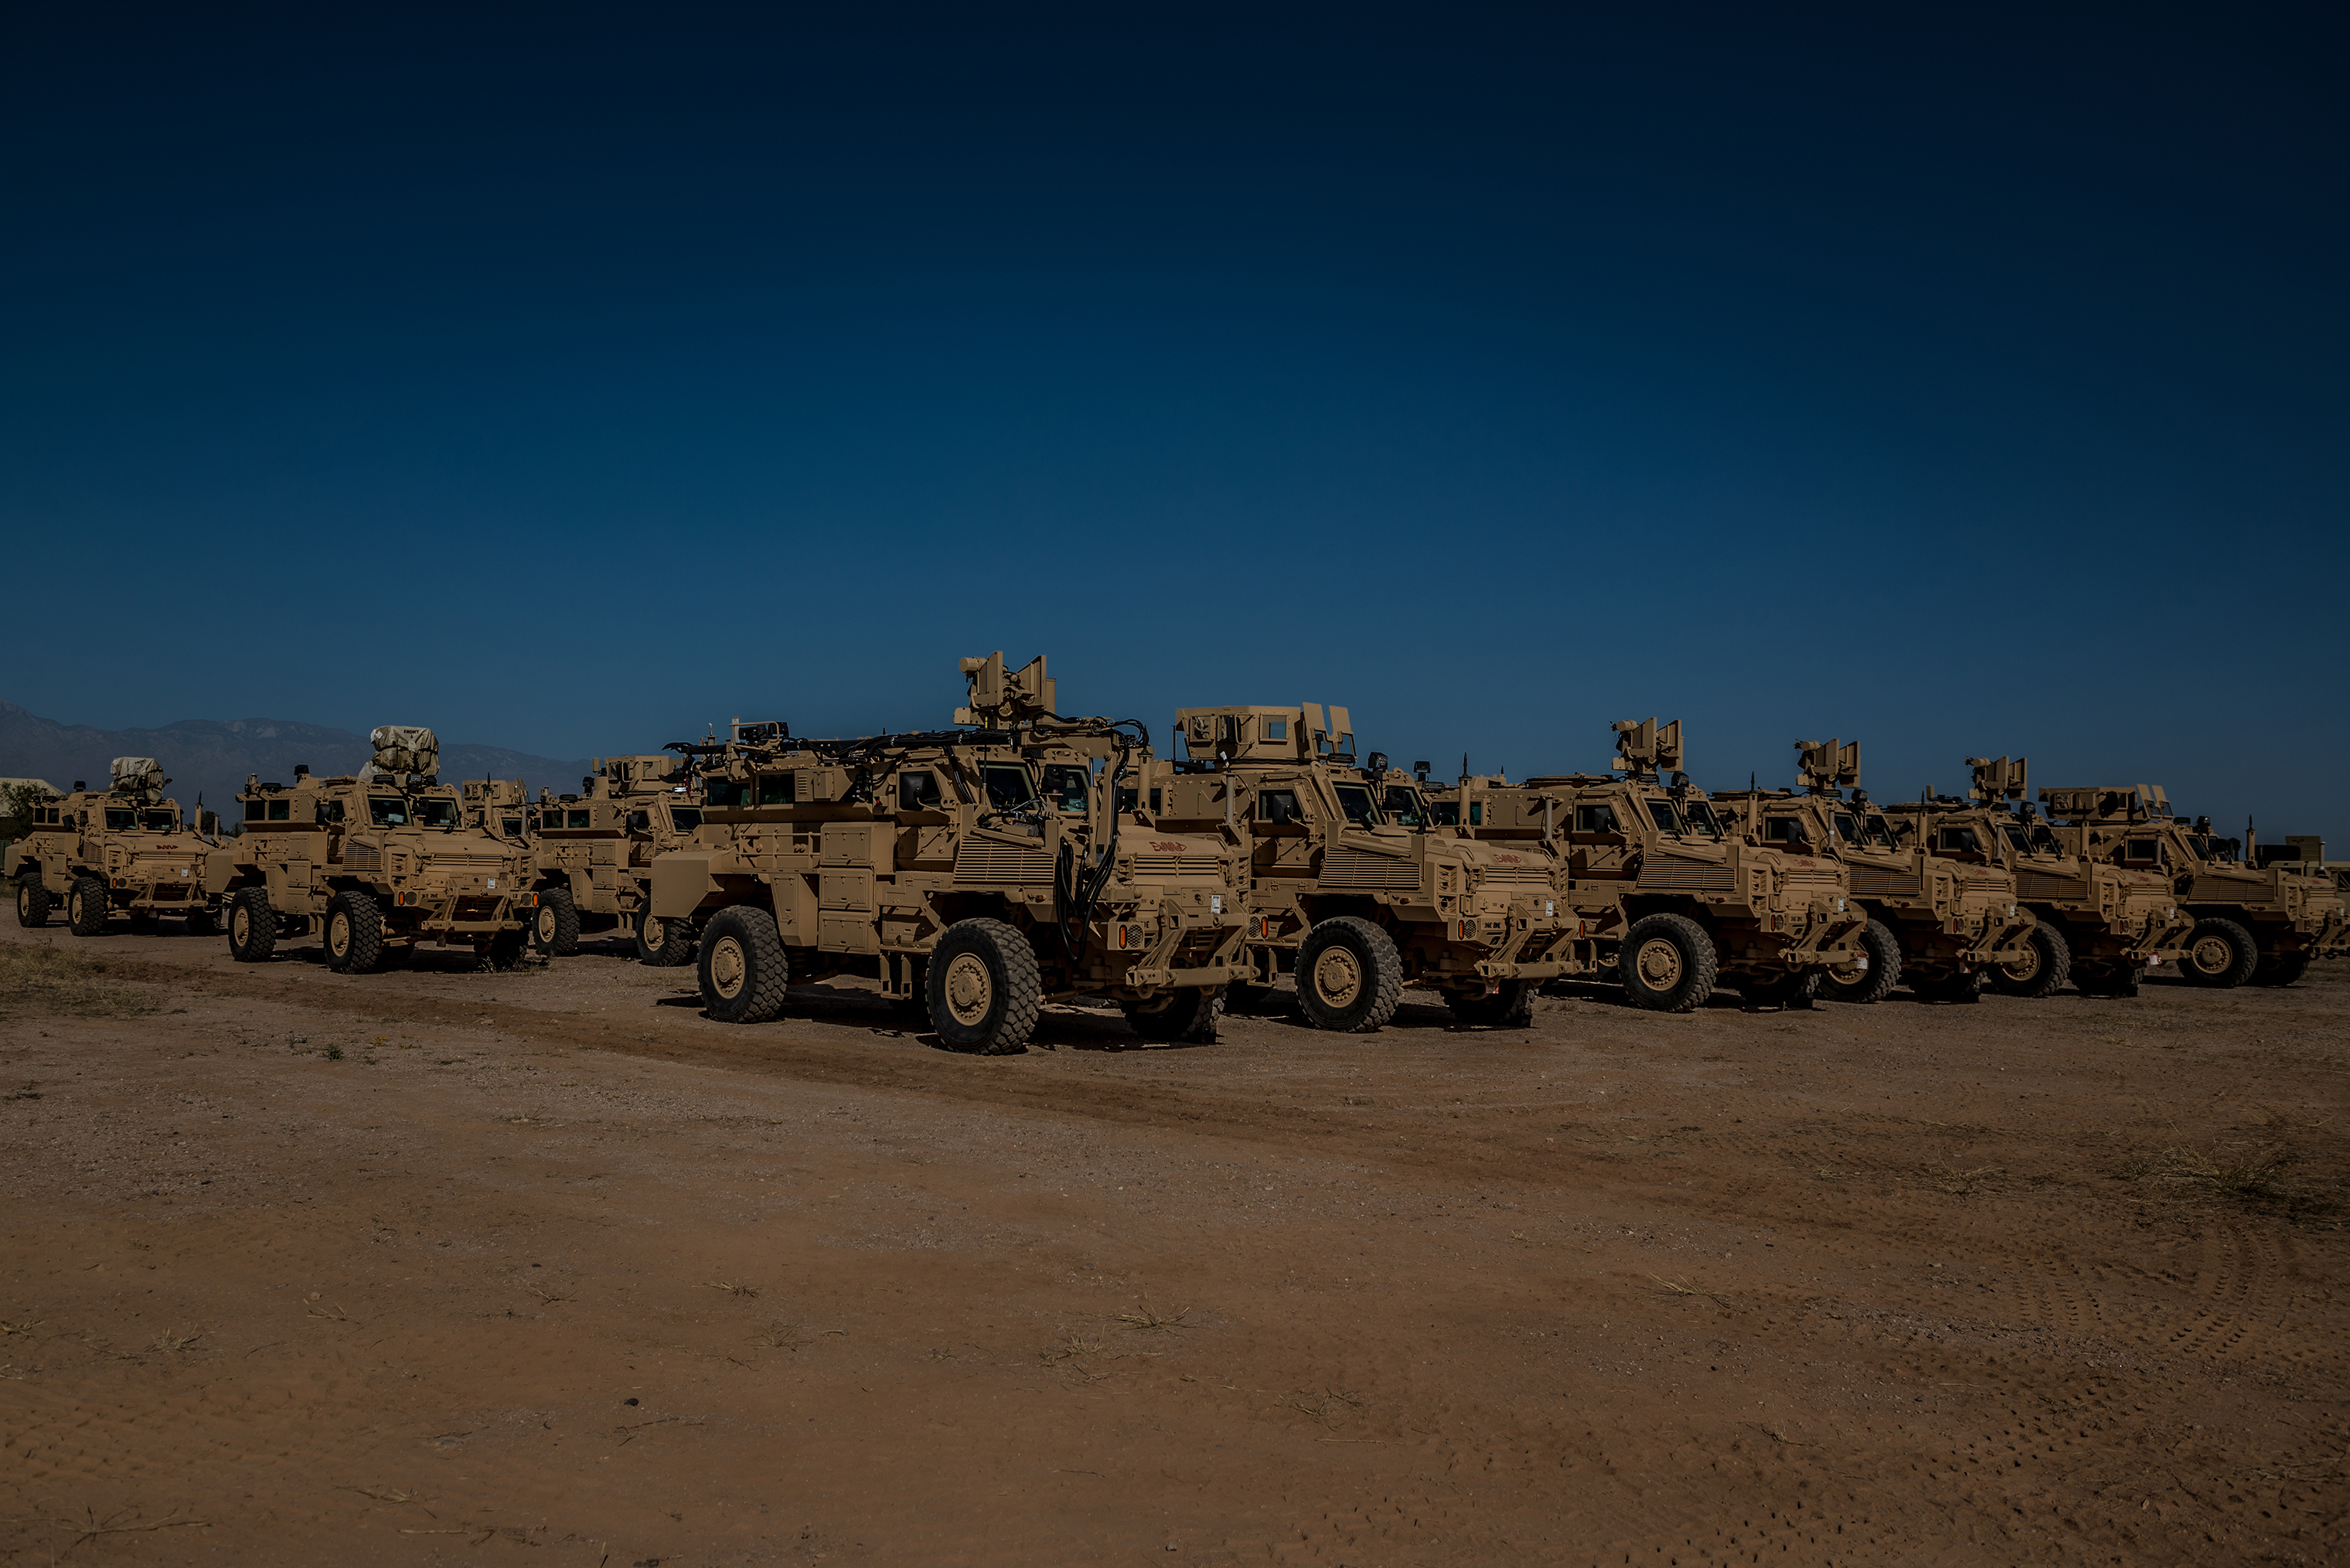 More than 100 units of heavy equipment, including armored Mine-Resistant Ambush Protected vehicles, sit parked, mostly collecting dust under the desert sun. There's little chance they will be used here.